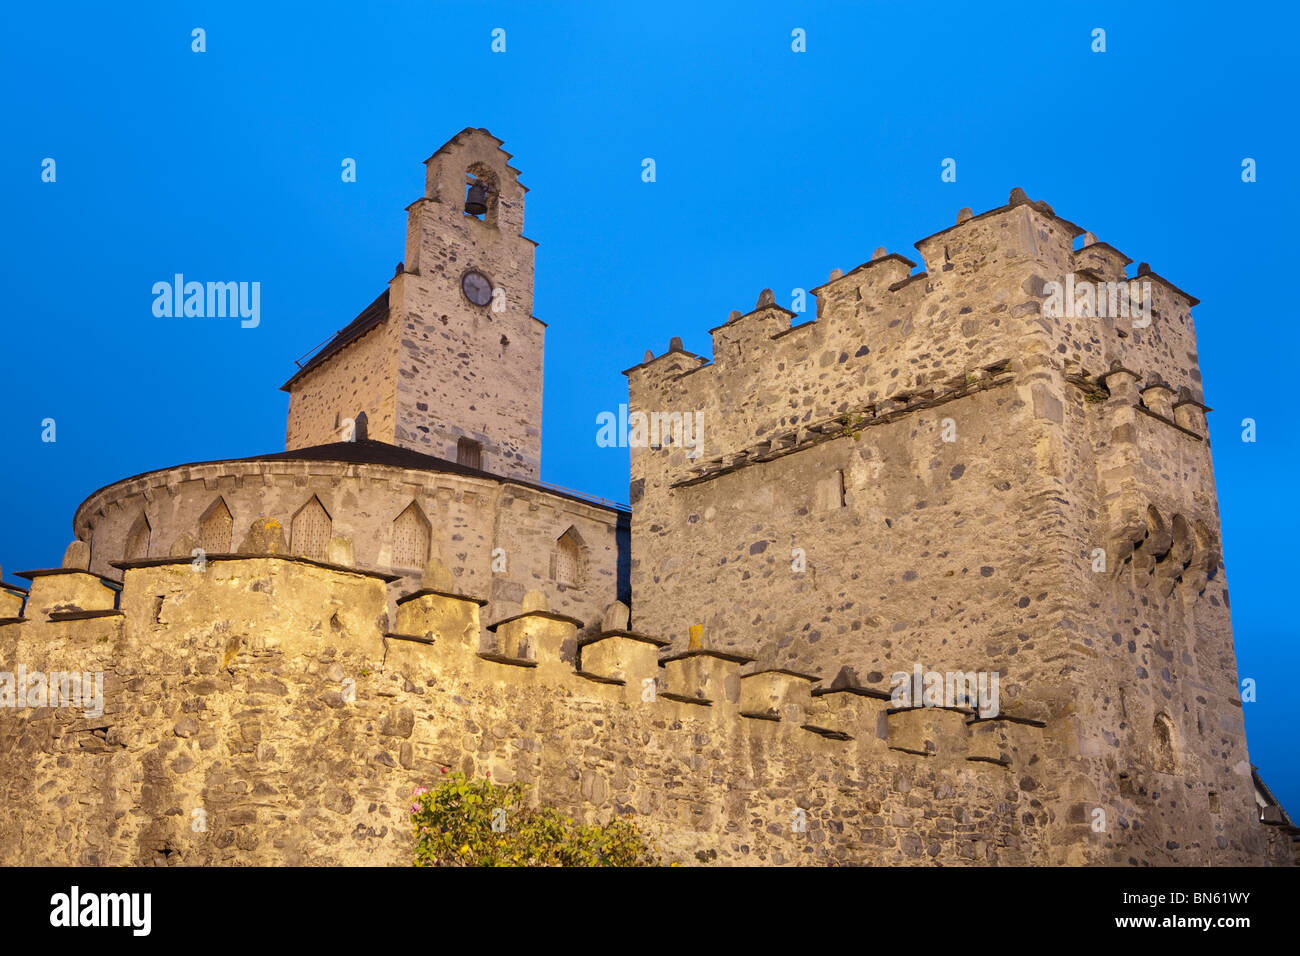 St Andre's Fortified Church illuminated at dusk, Luz-Saint-Sauveur, Midi Pyrenees, France - Stock Image